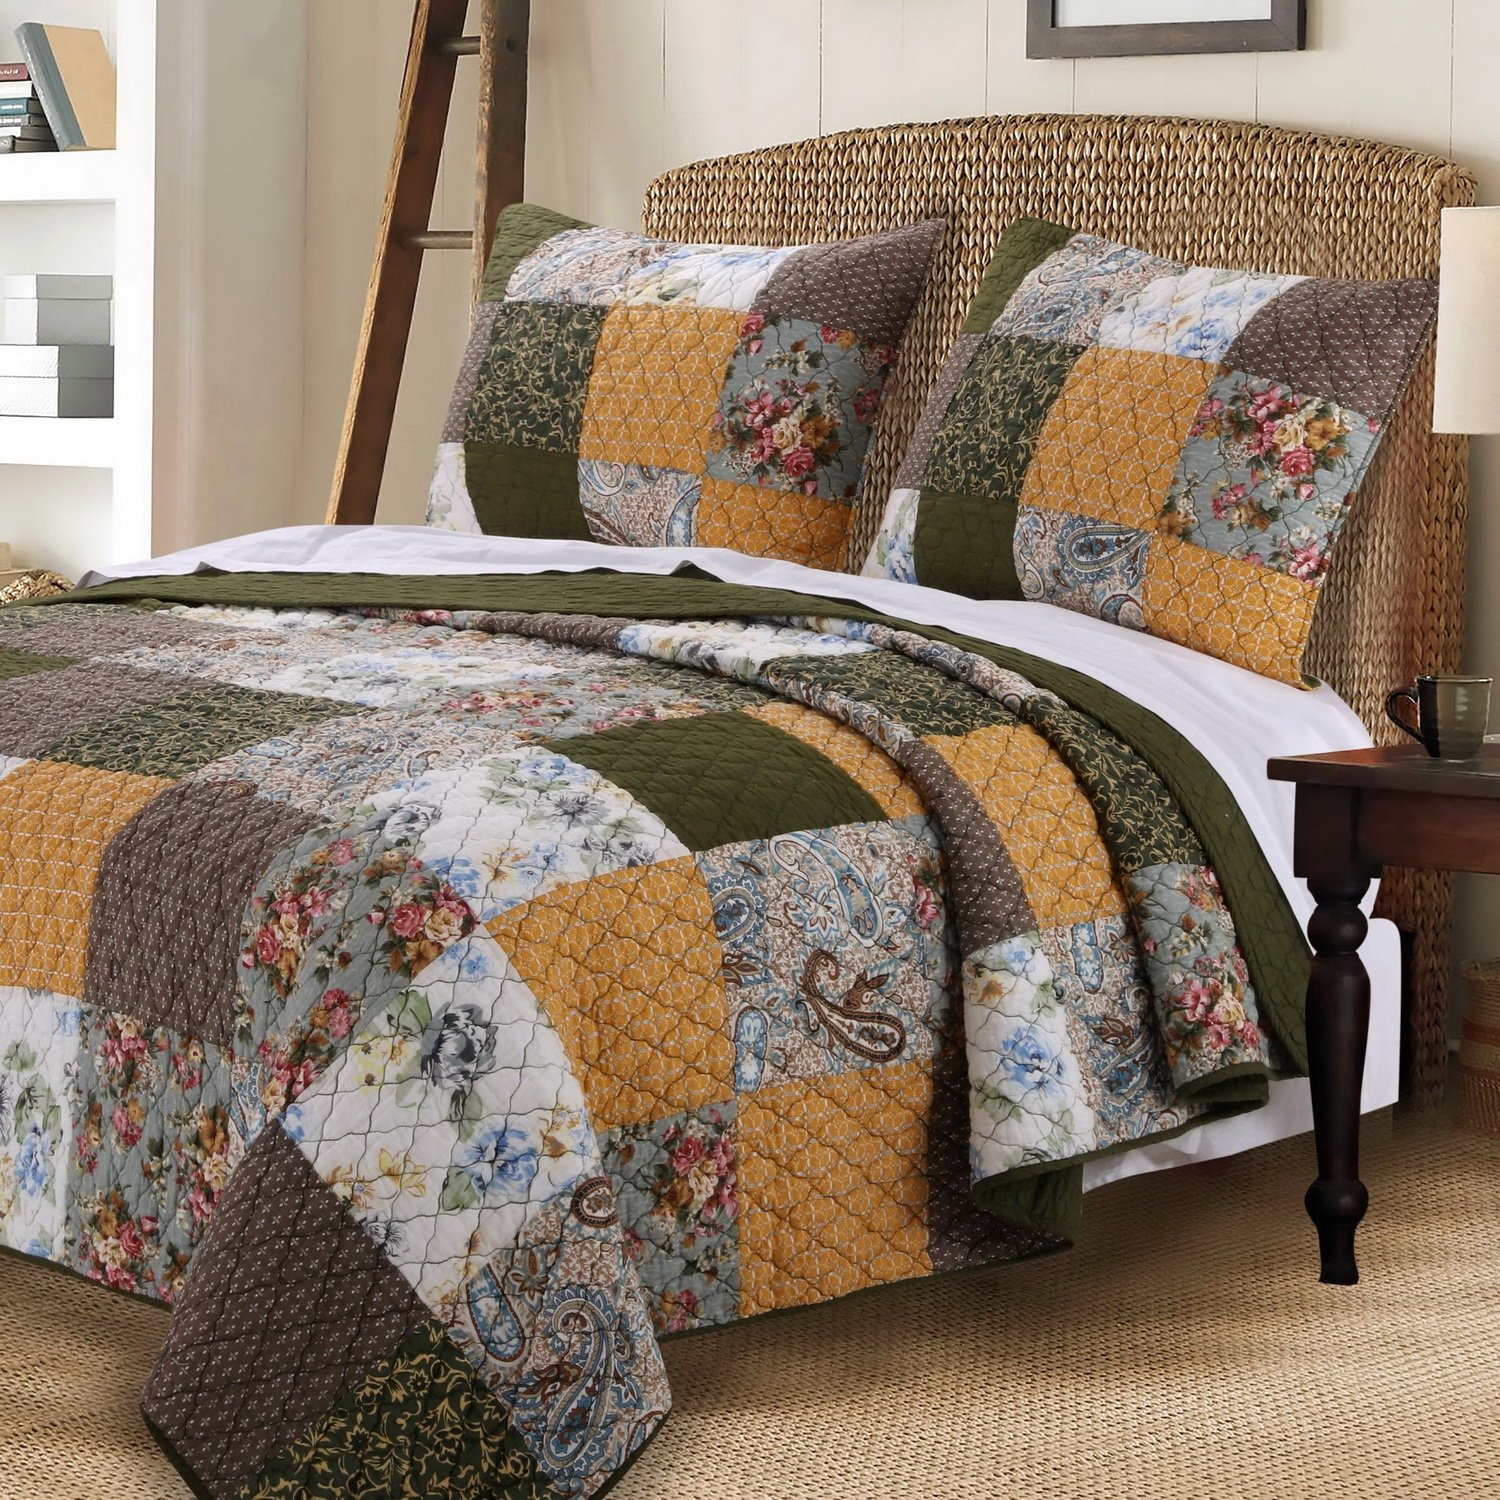 Vintage Country Paisley Floral Bedding Patchwork Pattern Gold Brown Green Luxury 100 Cotton Print Reversible Quilt 3 Piece Set with Shams Full/Queen Size - Includes Bed Sheet Straps